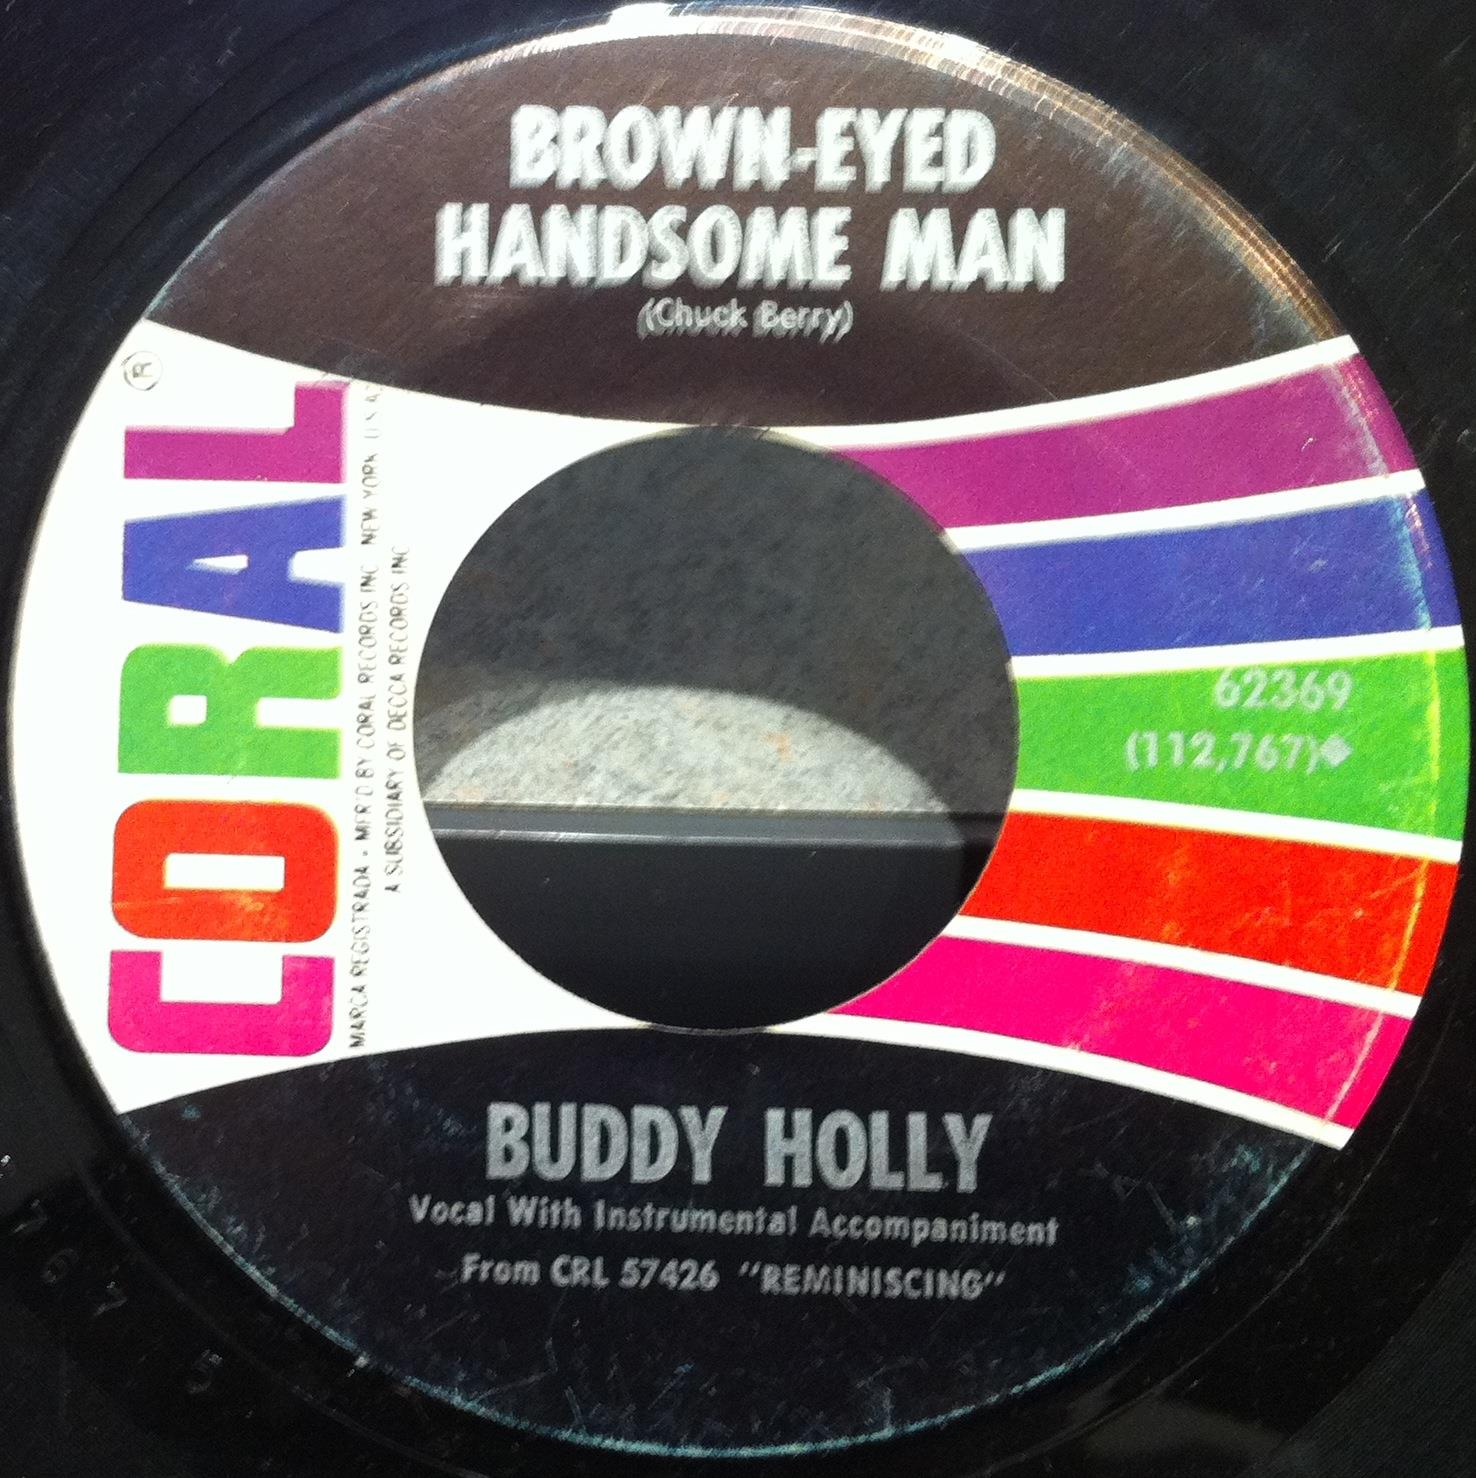 "BUDDY HOLLY - Buddy Holly Brown Eyed Hansome Man - Wishing 7"" Vg Coral 62369 Vinyl Record (brown Eyed Hansome"